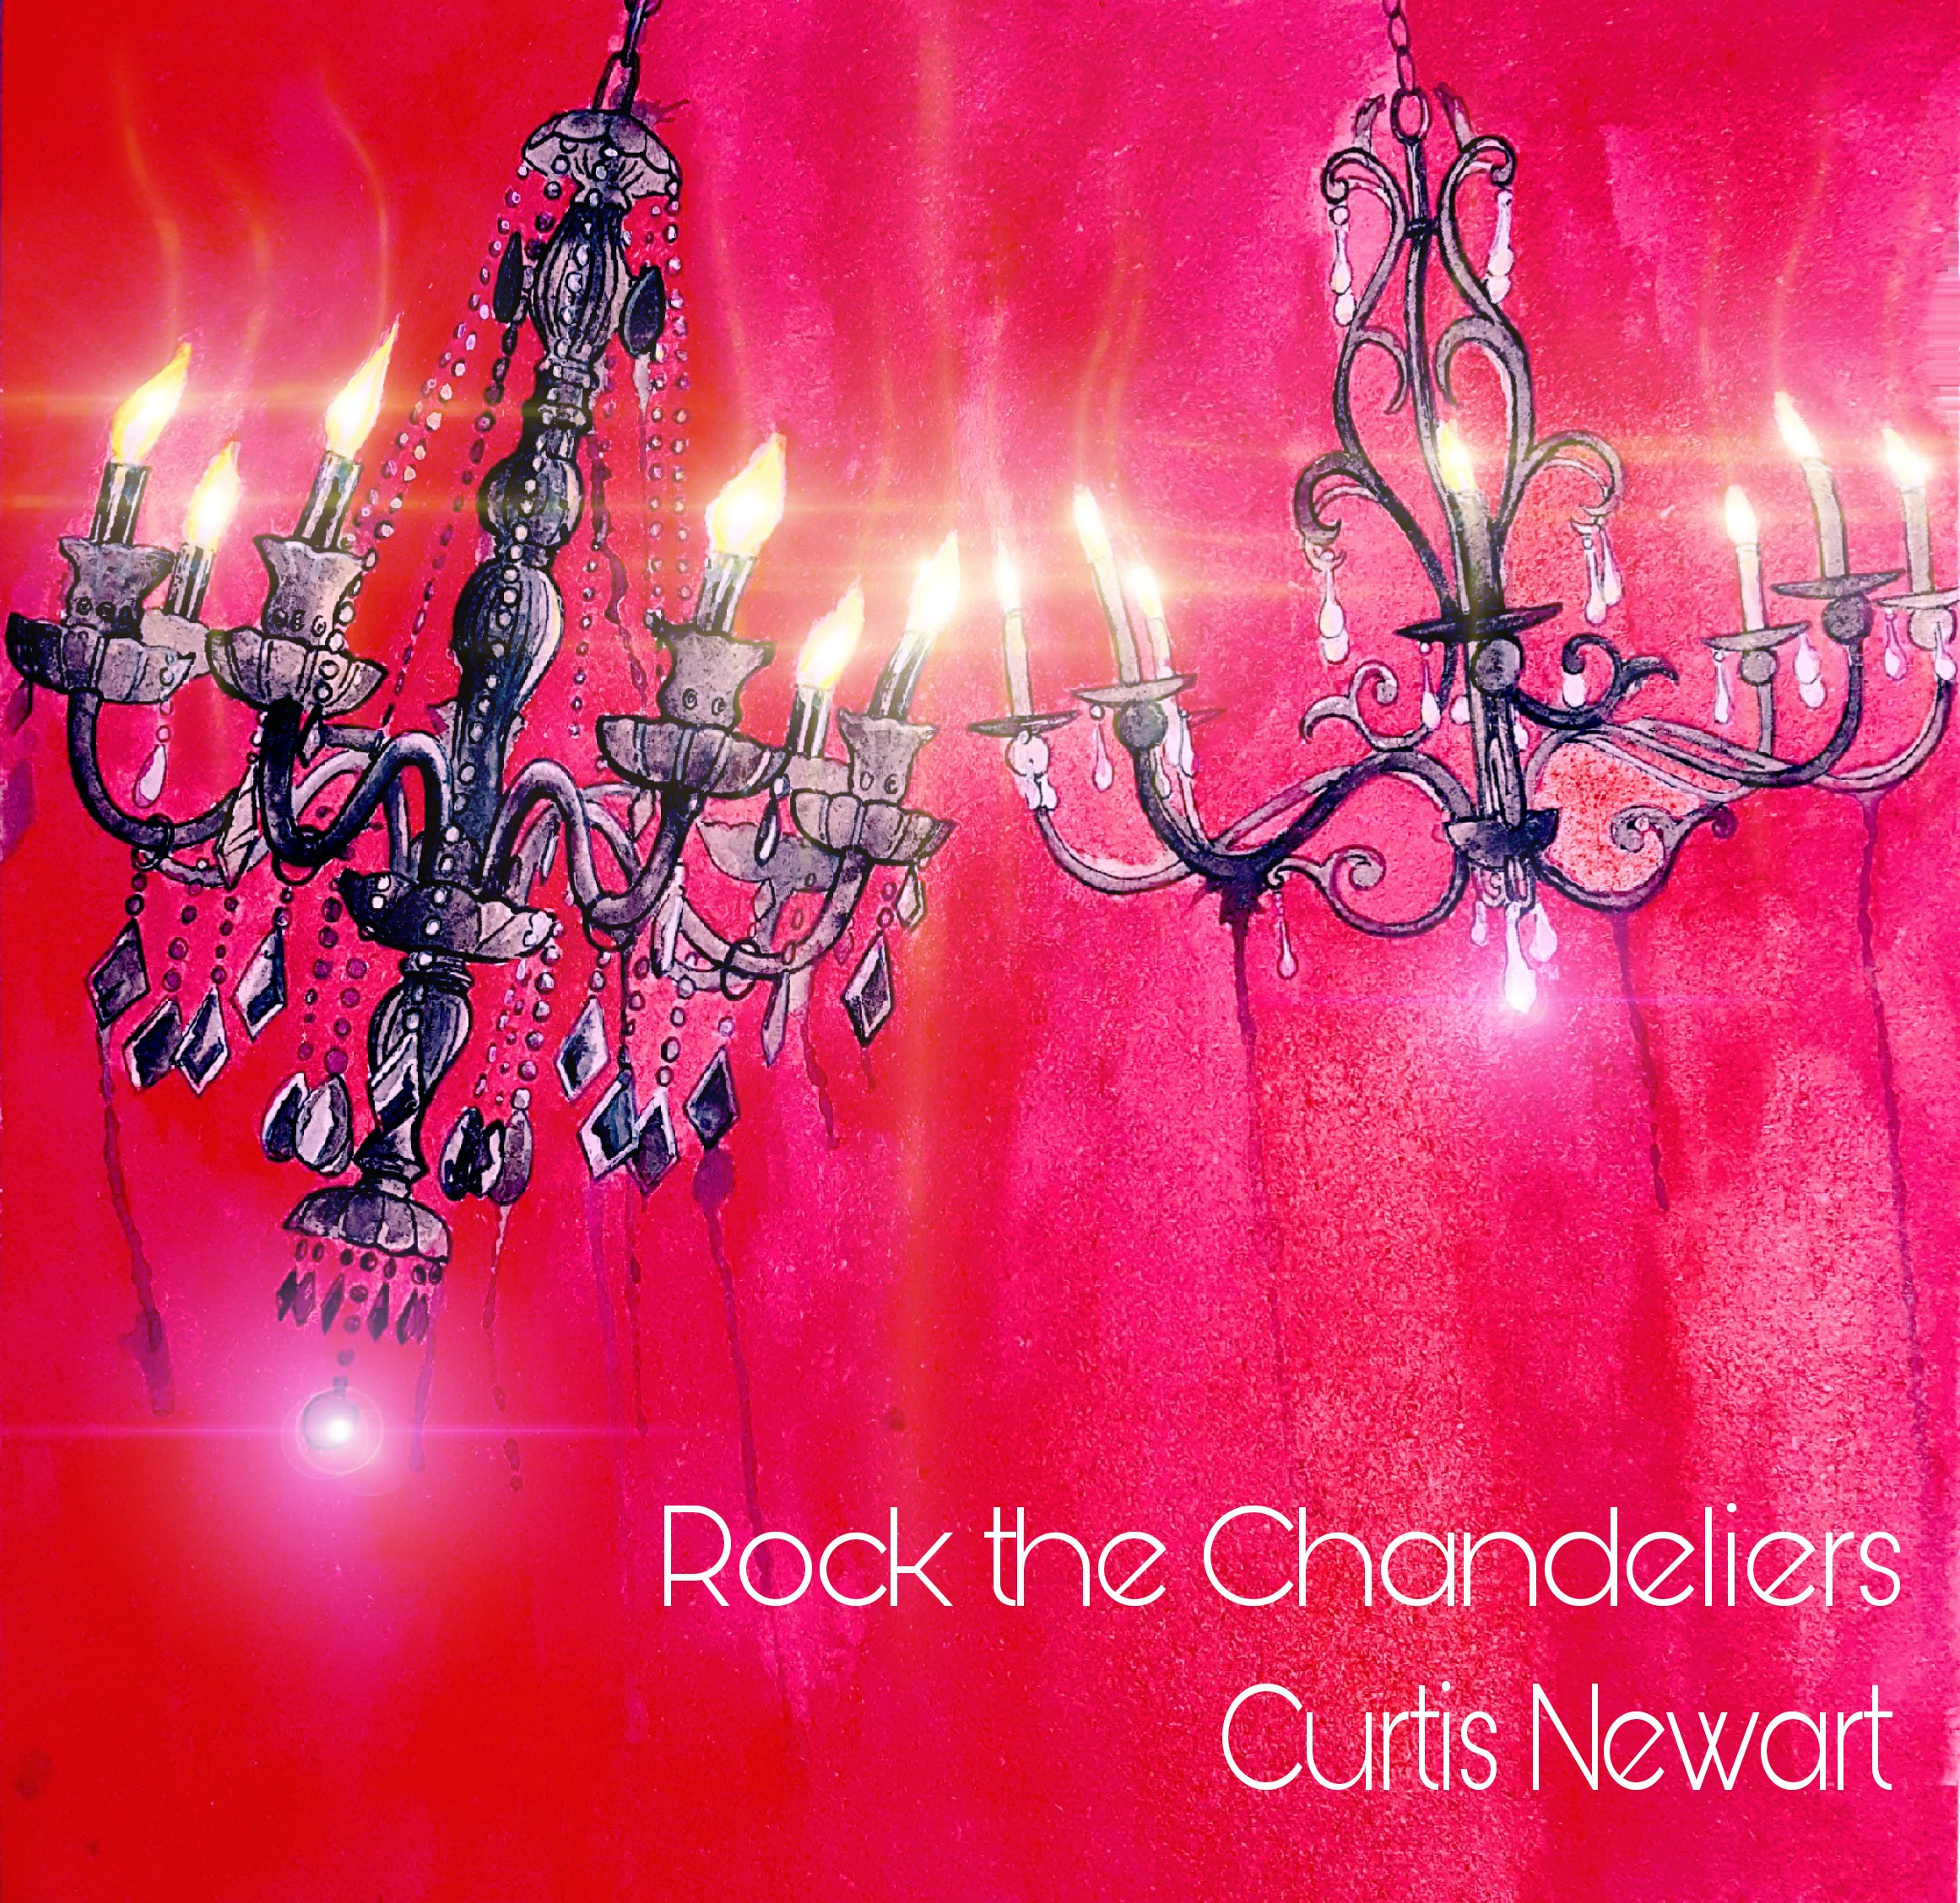 NEW WORK - Newart's new album, Rock the Chandeliers, is now available worldwide from Immaculate Records. With 8 original songs, plus a re-make of his popular song 'Perverse', the LP also features a cover song of REM's 'Man on the Moon'.Track List:1. Rock the Chandeliers2. Confetti and Beachballs3. Down the Garden Path4. Perverse (2018)5. Superhuman6. Lost in Light7. Fork in the Outlet8. Thru the Keyhole9. Man on the Moon10. Trippin' on the High HorseExecutive producer: Curtis Newart. Producer/Engineer: Jacob Wing at Ill Eagle Studio in Florence, Montana. Producer/Engineer: Robert Newart at Immaculate Records in Superior, Montana.Original cover art: Justin Lewis at Dermagraphink in North Hollywood, California. Additional effects: Robert Newart.